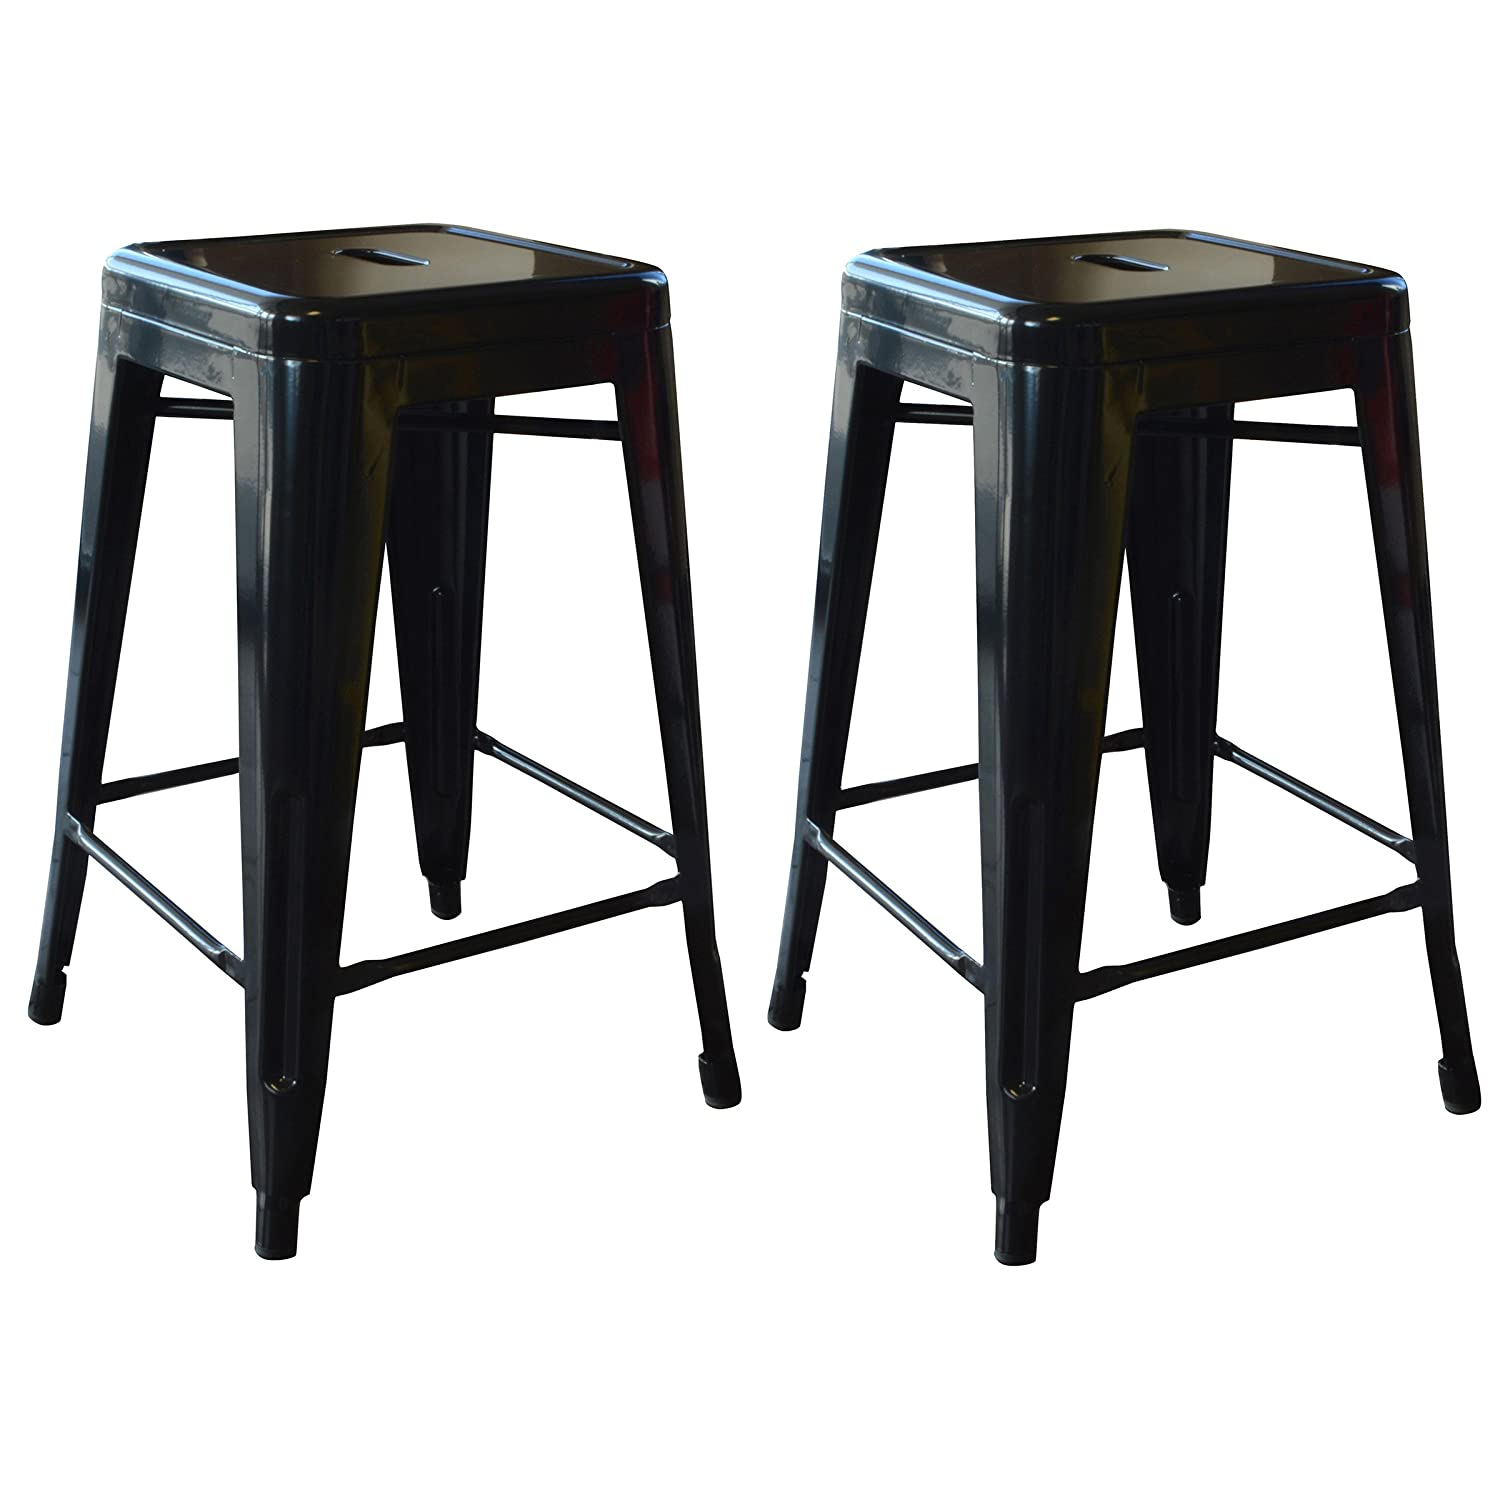 Fabulous Amerihome 2 Piece Metal Bar Stool Black 24 Inch Evergreenethics Interior Chair Design Evergreenethicsorg